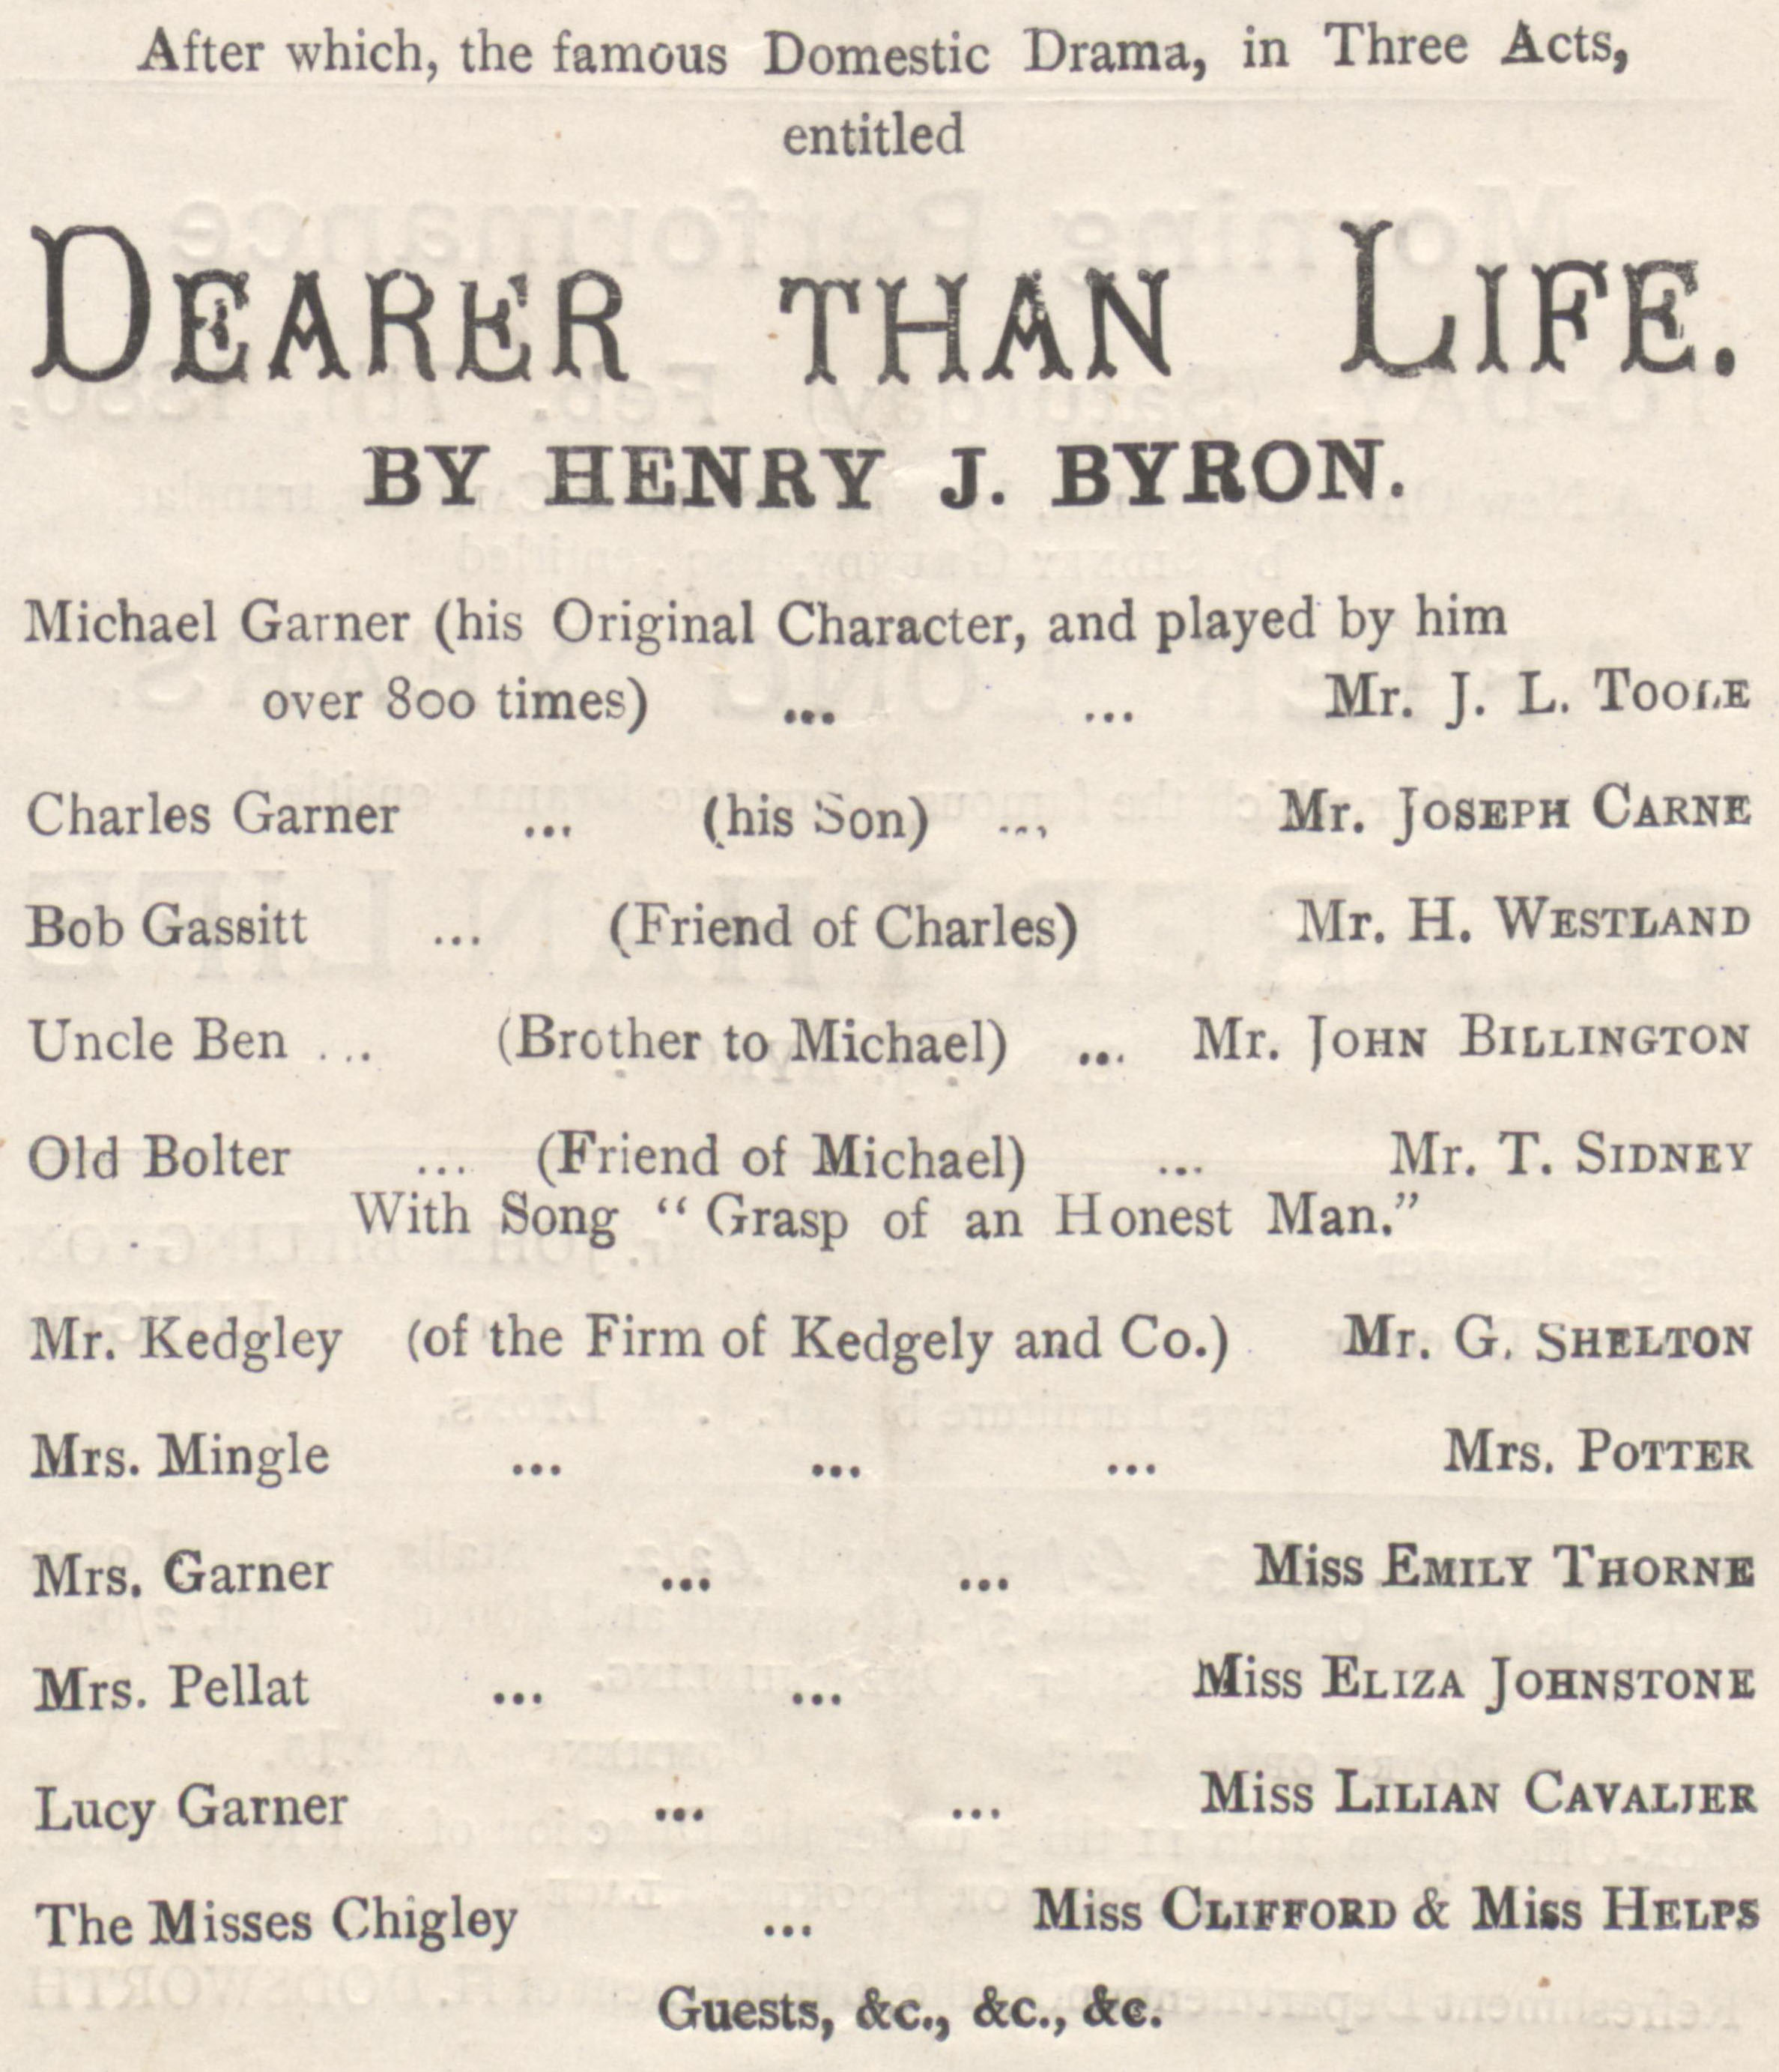 Cast list for Dearer than Life by Henry J Byron from the Folly Theatre, London, Feb. 7, 1880.